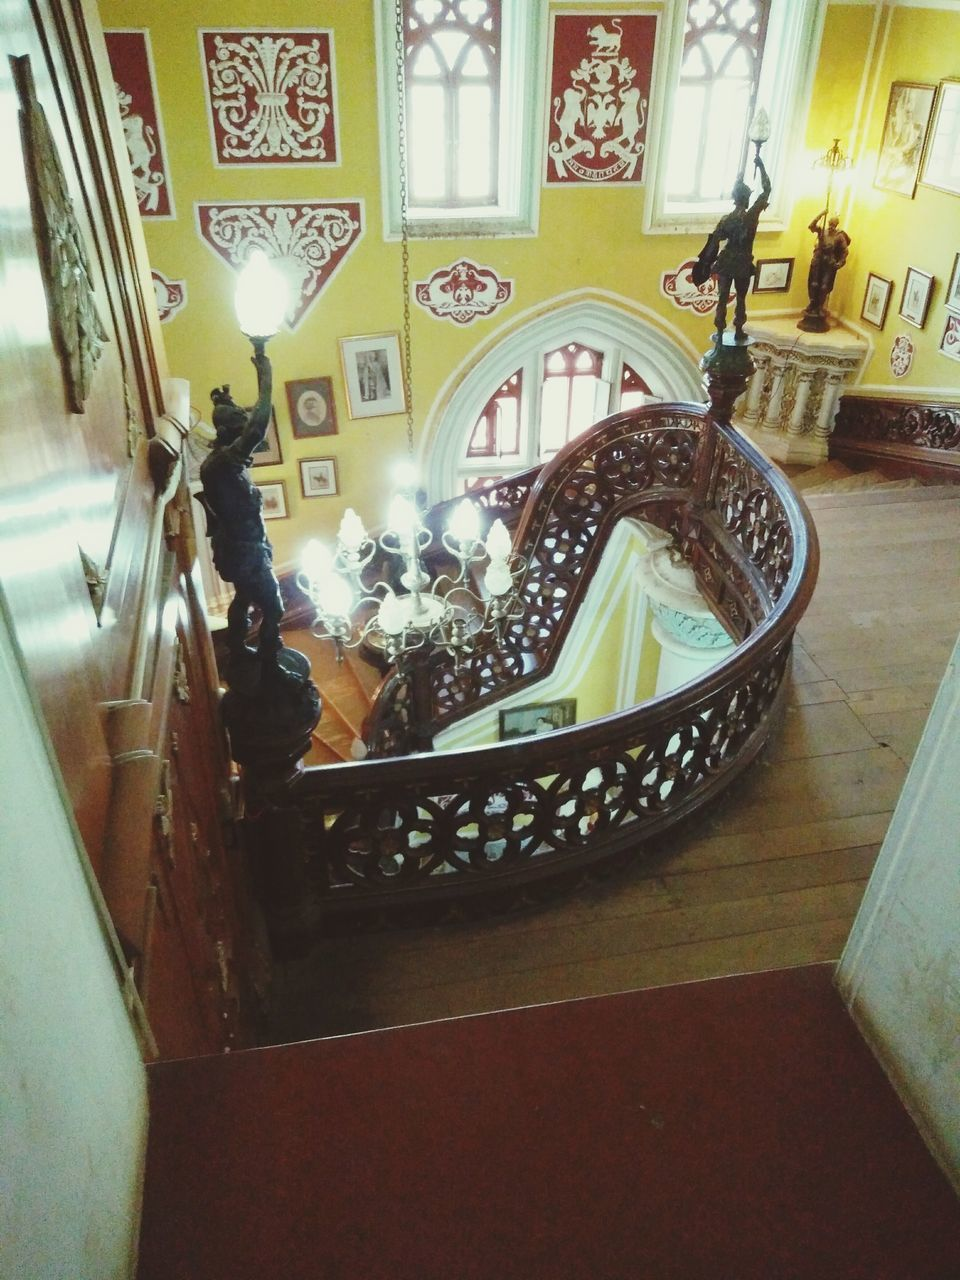 indoors, real people, staircase, full length, steps, steps and staircases, lifestyles, one person, built structure, architecture, women, day, men, people